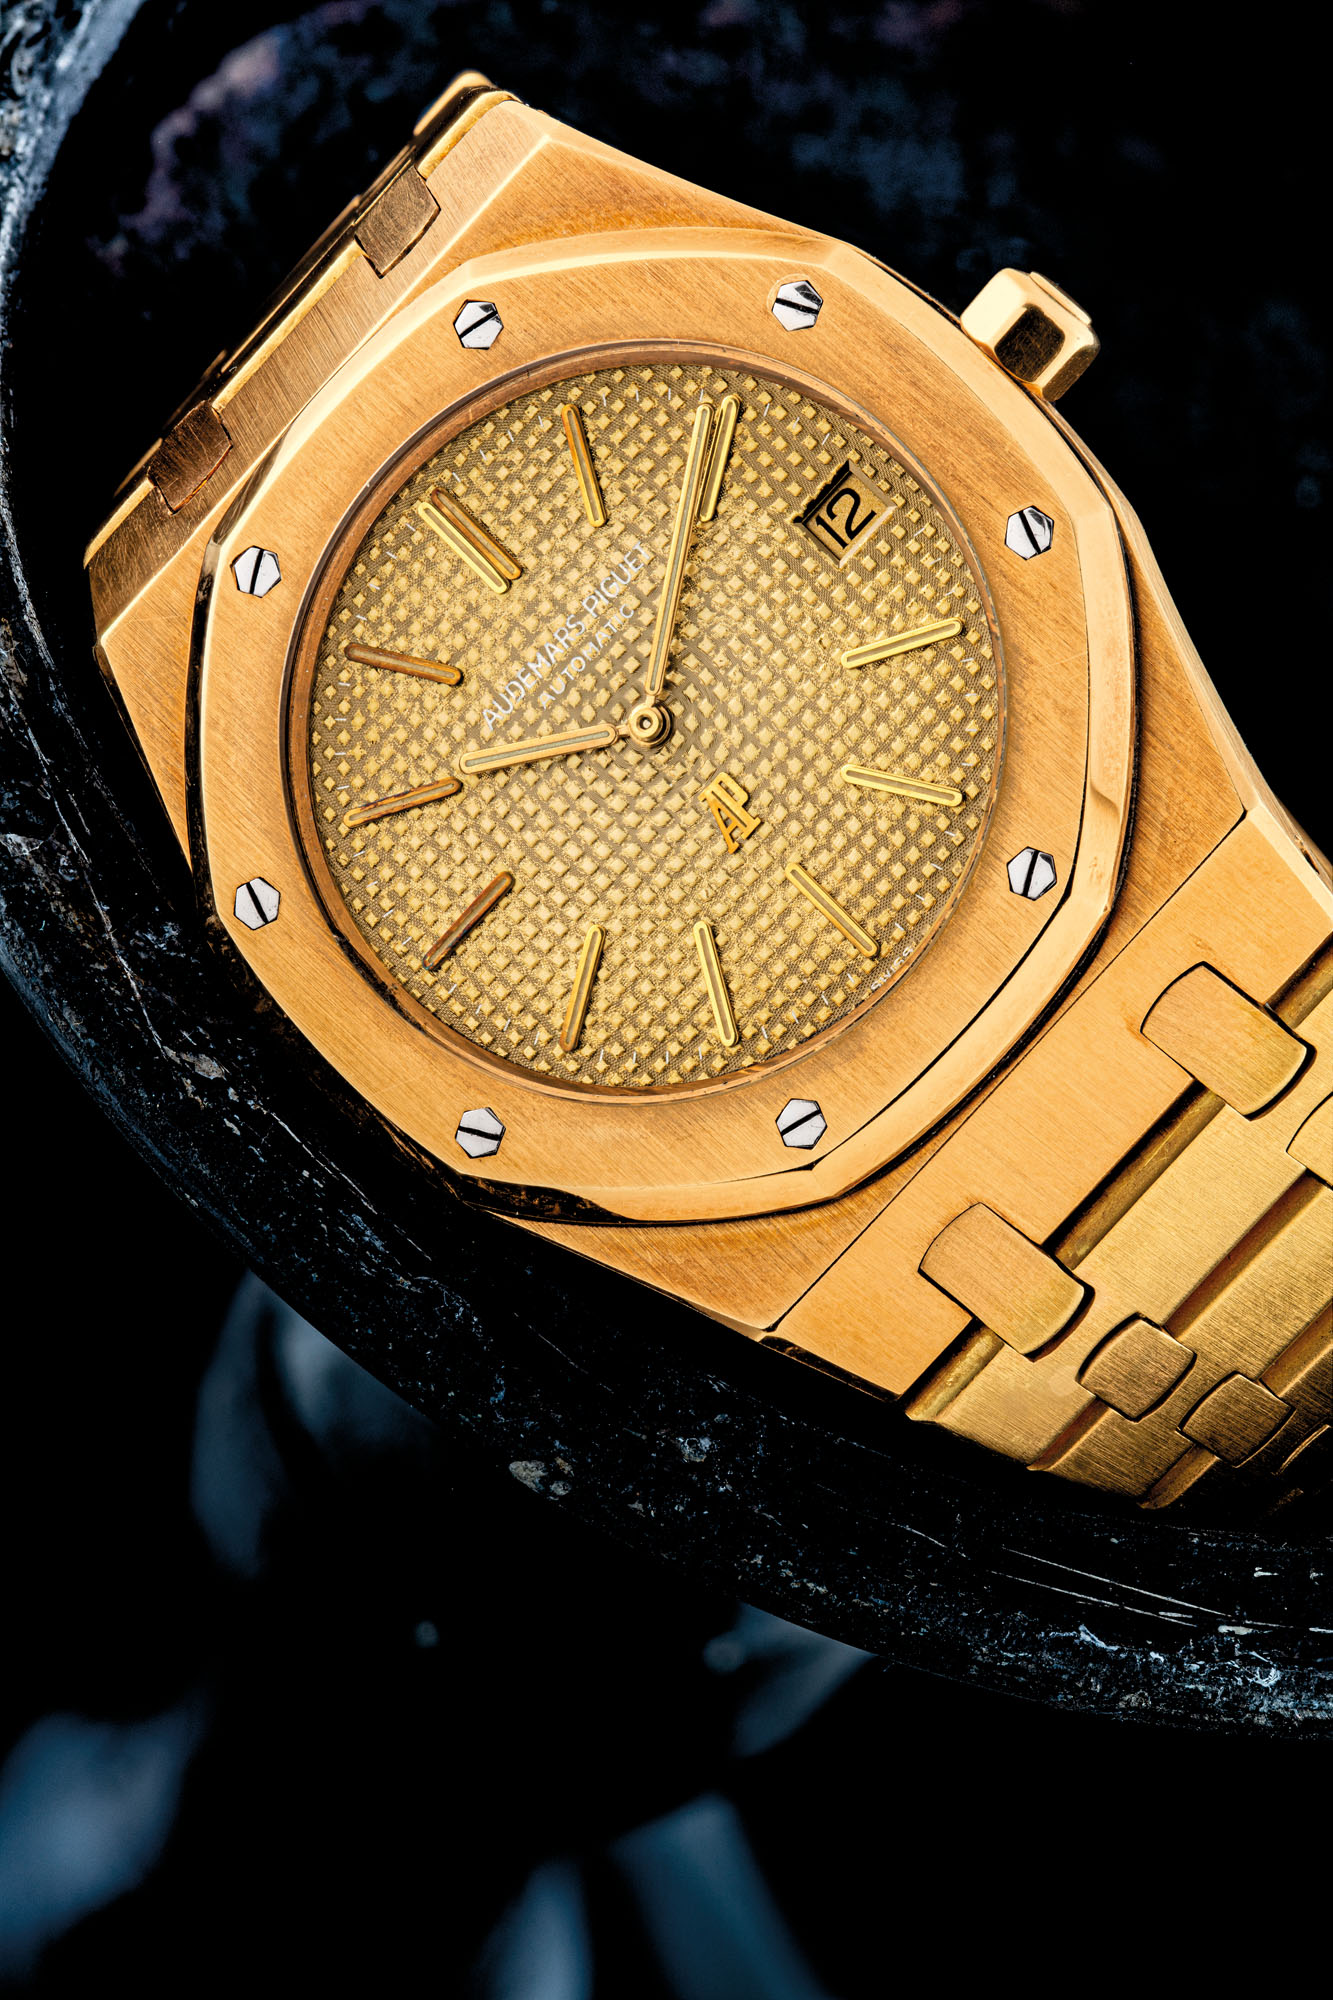 AUDEMARS PIGUET. AN EARLY, HIGHLY ATTRACTIVE AND VERY RARE 18K GOLD AUTOMATIC WRISTWATCH WITH DATE, BRACELET AND TROPICAL DIAL